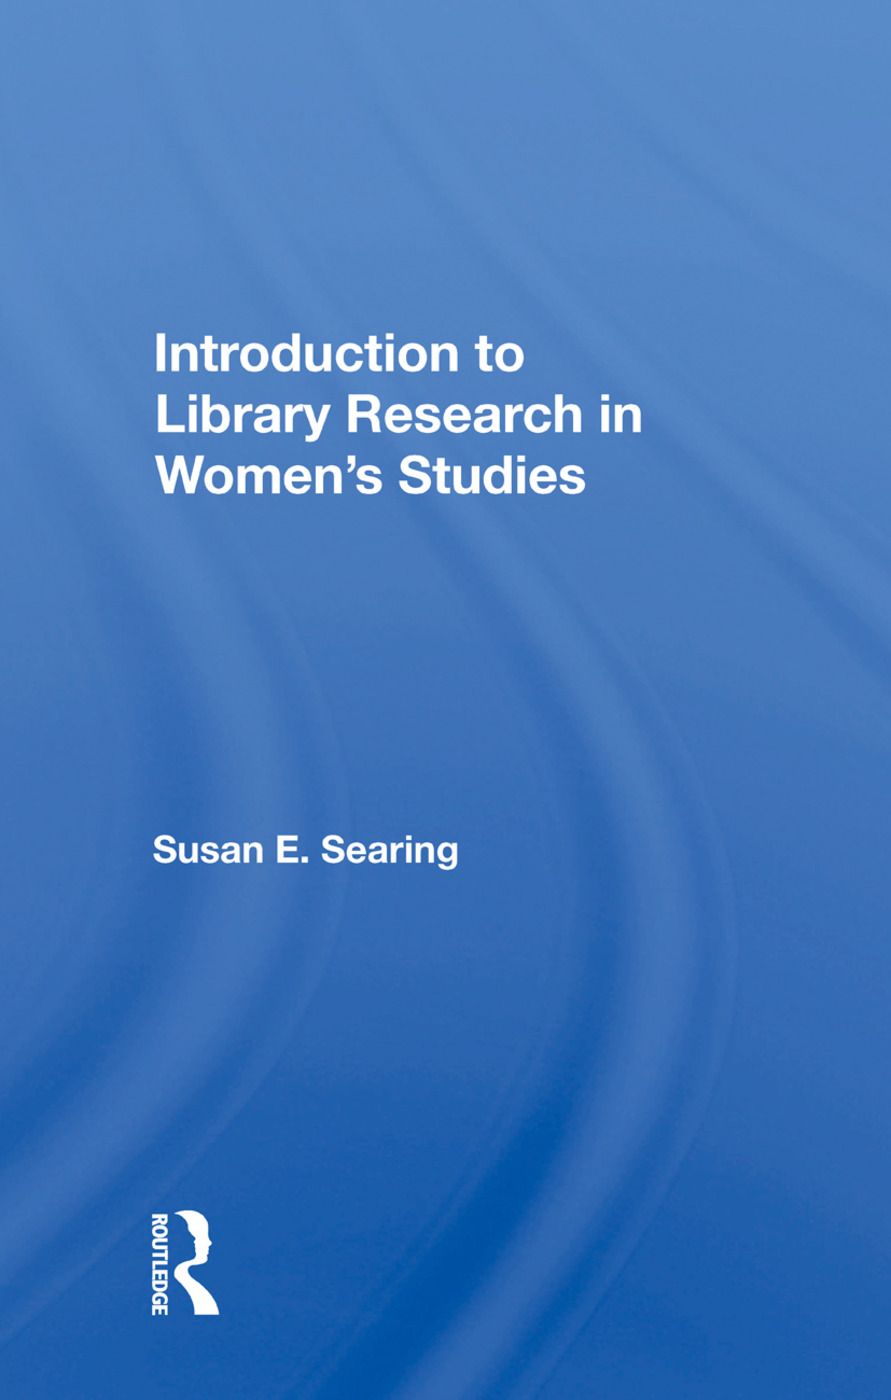 Introduction To Library Research In Women's Studies book cover